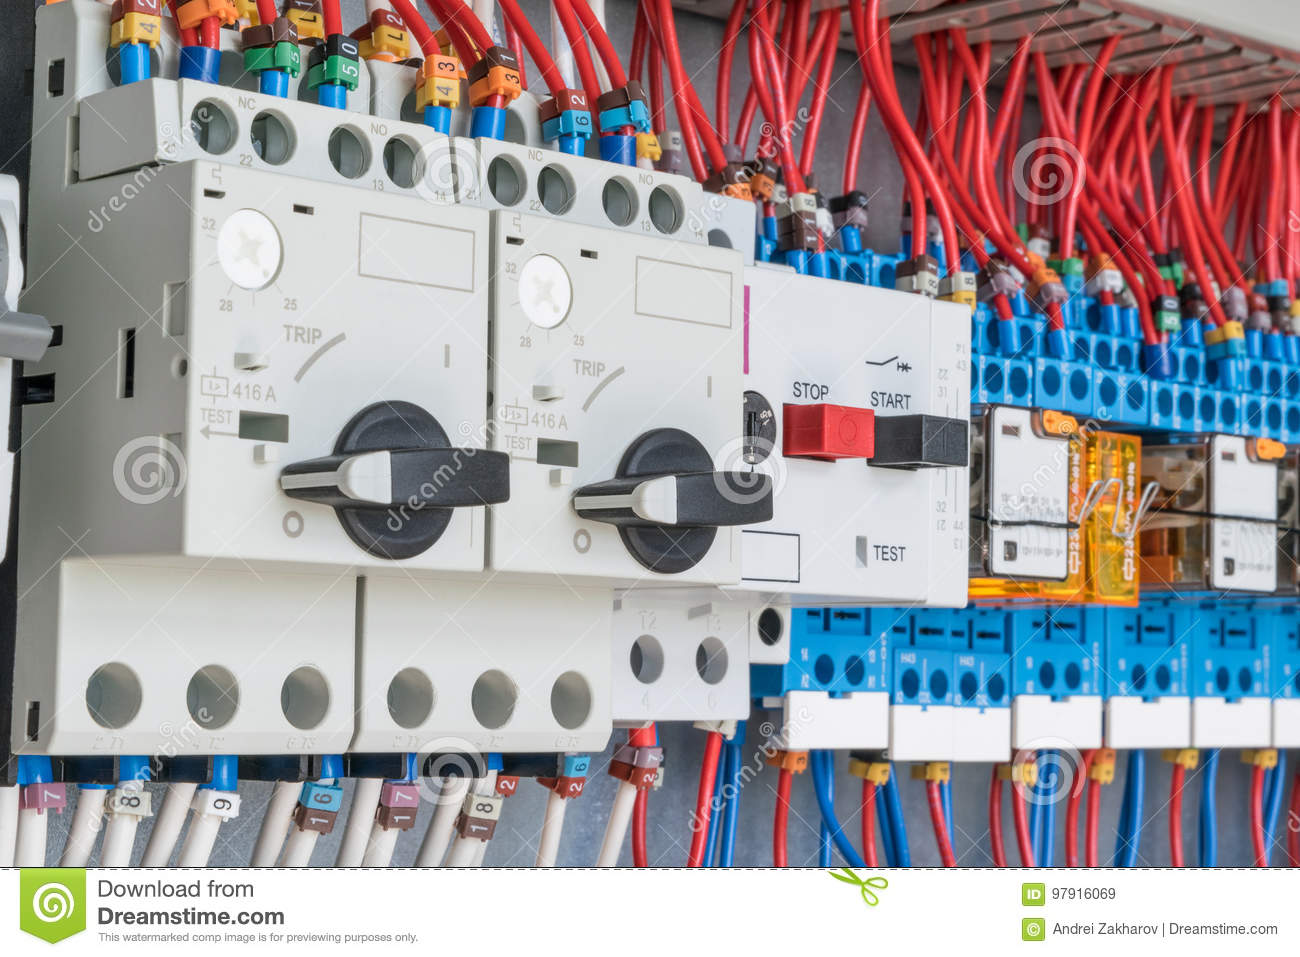 In the electrical control panel are circuit breakers protecting the motor and relay.